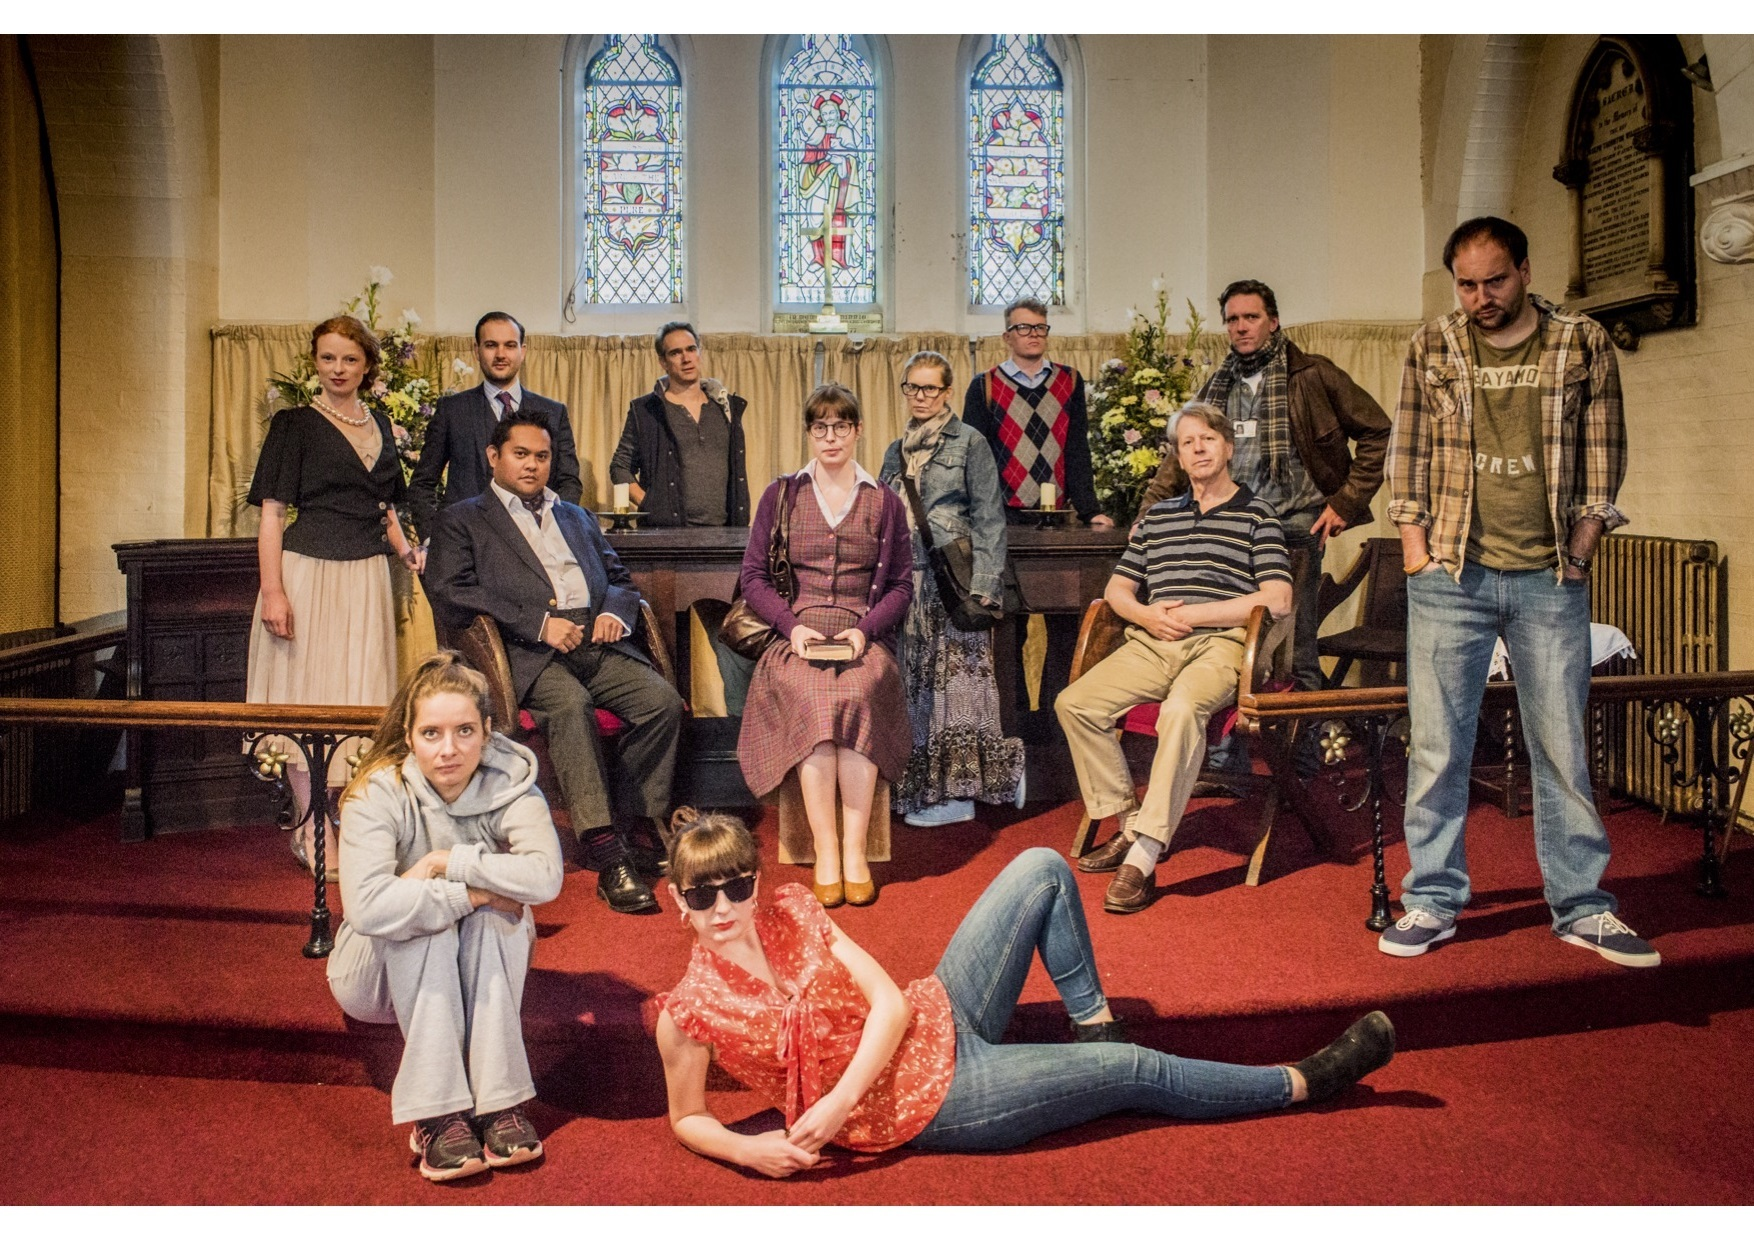 Merry Opera are bringing Messiah to Fairford